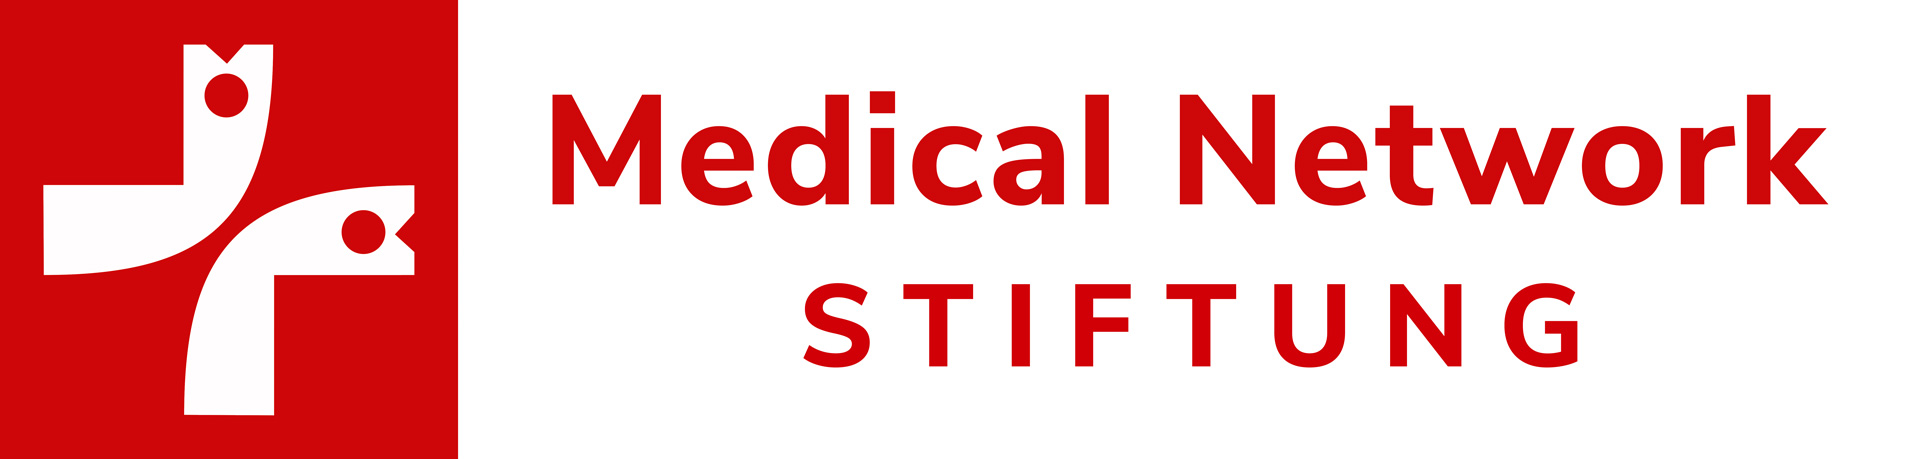 Logo Medical Network Stiftung 1920x459px